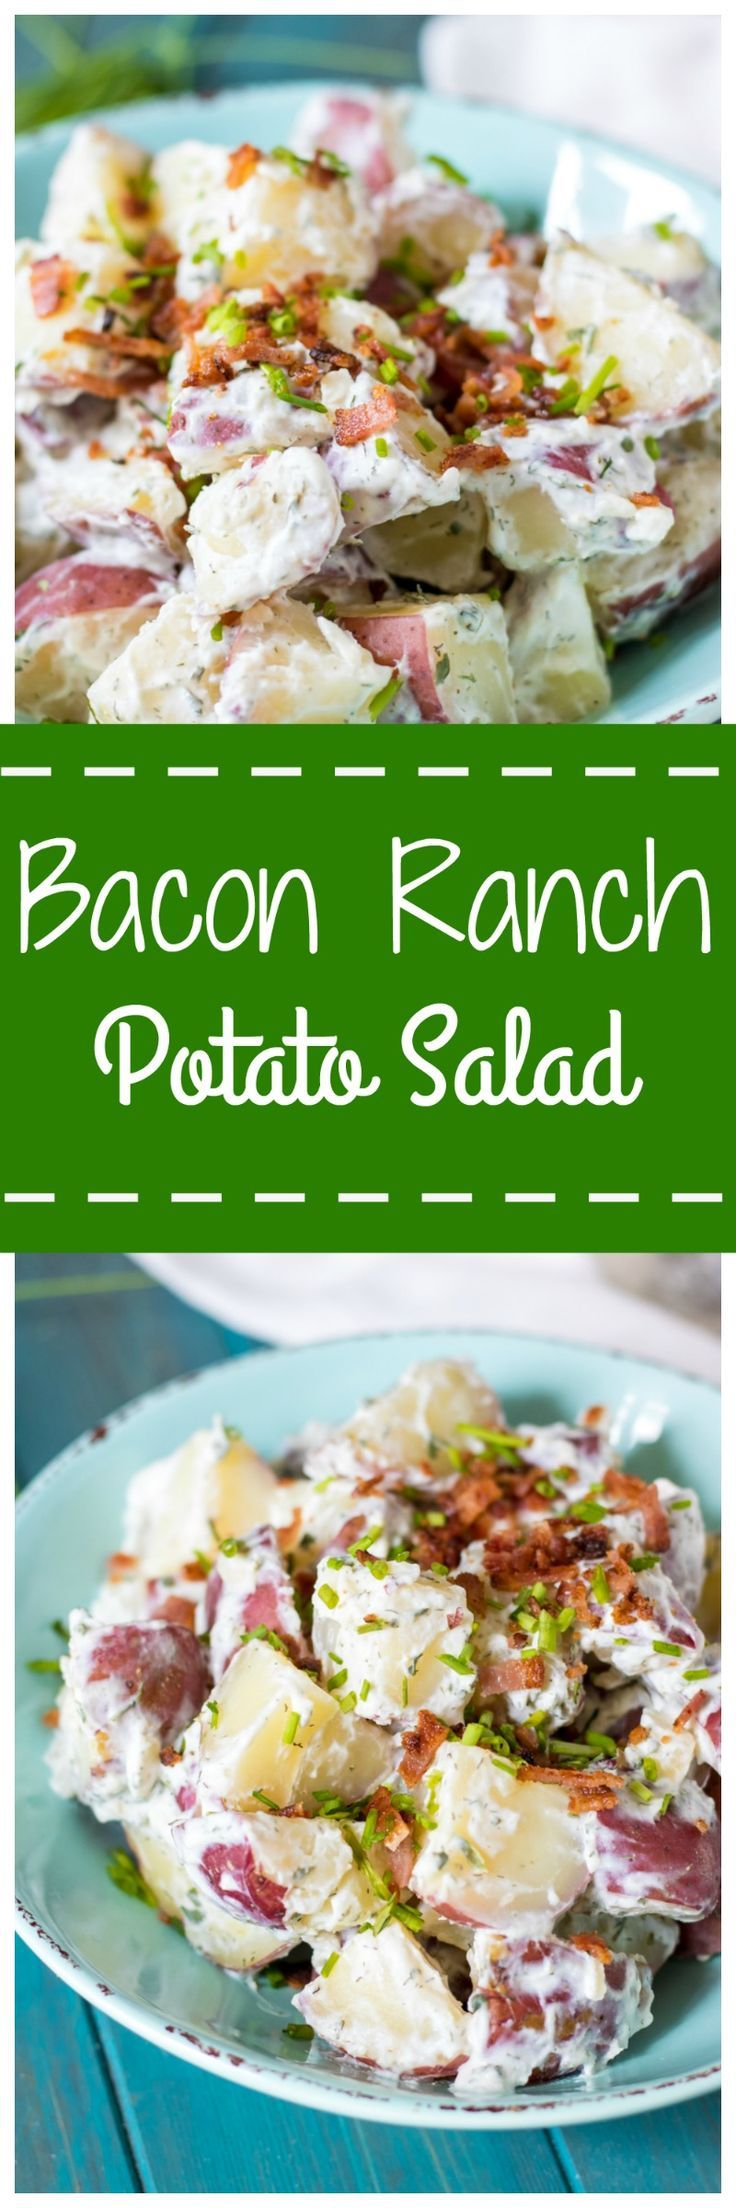 Bacon Ranch Potato Salad:Red potatoes, crispy bacon, sharp scallions, and a homemade Ranch dressing made with Light Mayonnaise and Greek Yogurt is sure to become your new favorite pot-luck go-to!